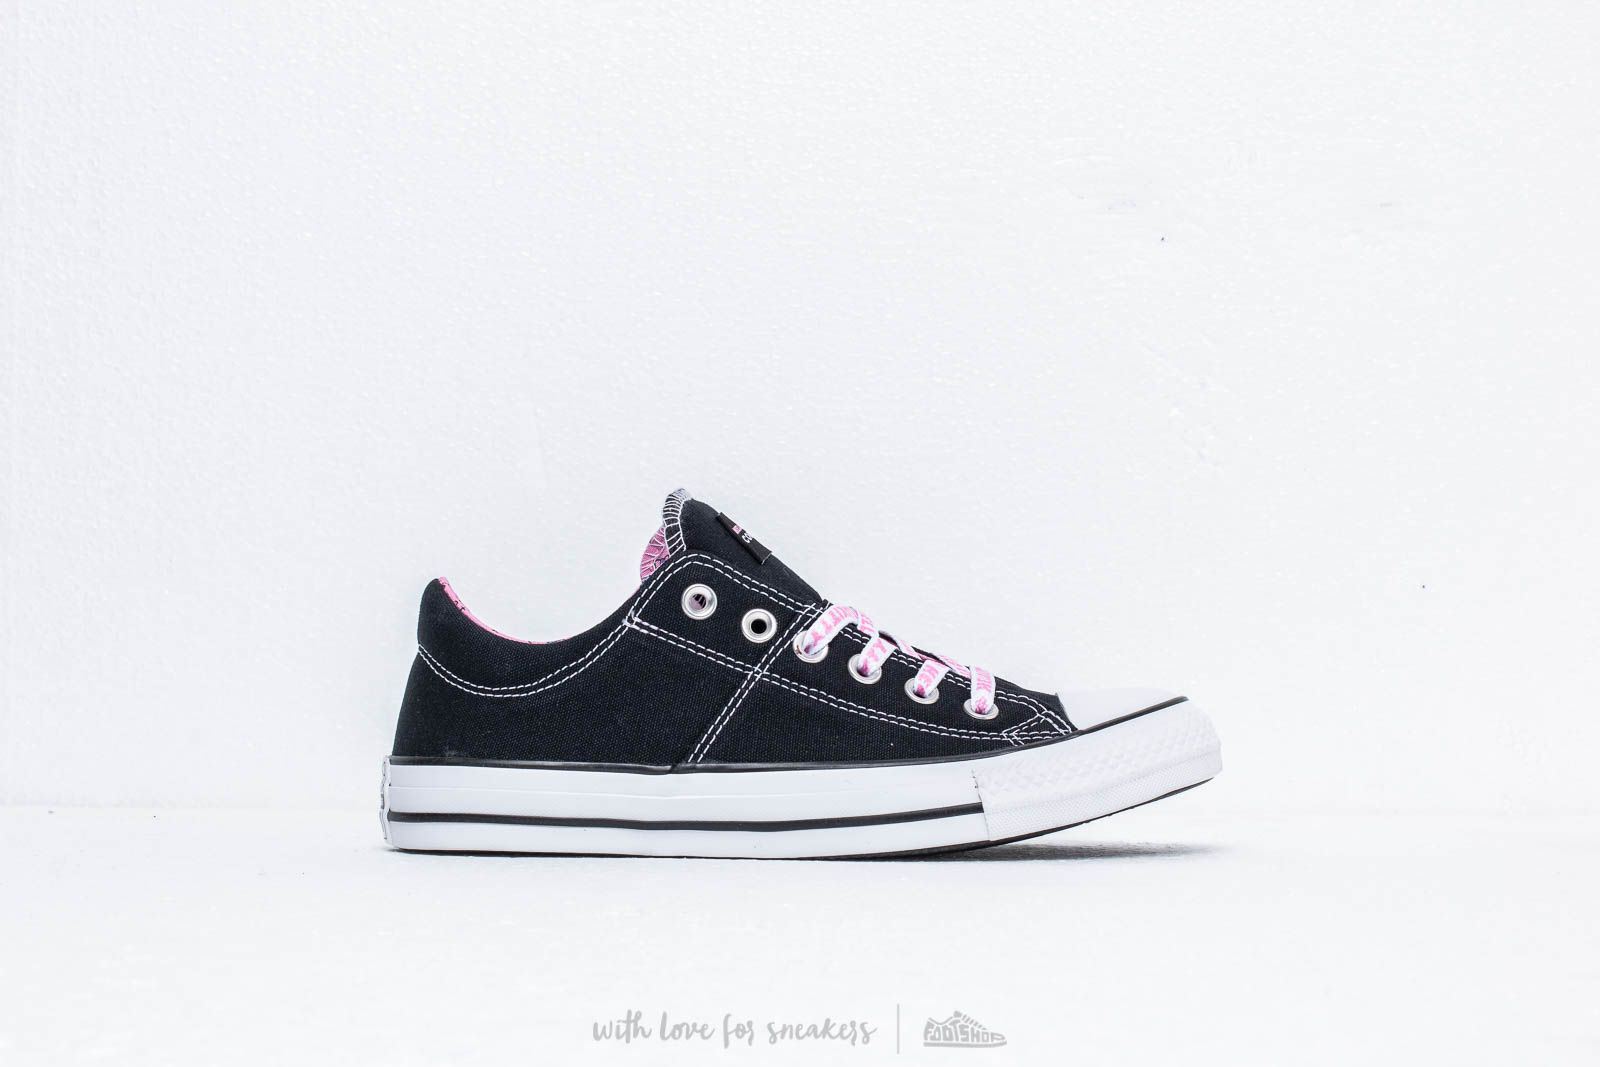 0a4552d6e5b05b Converse x Hello Kitty Chuck Taylor All Star Madison Black/ Prism Pink/  White at